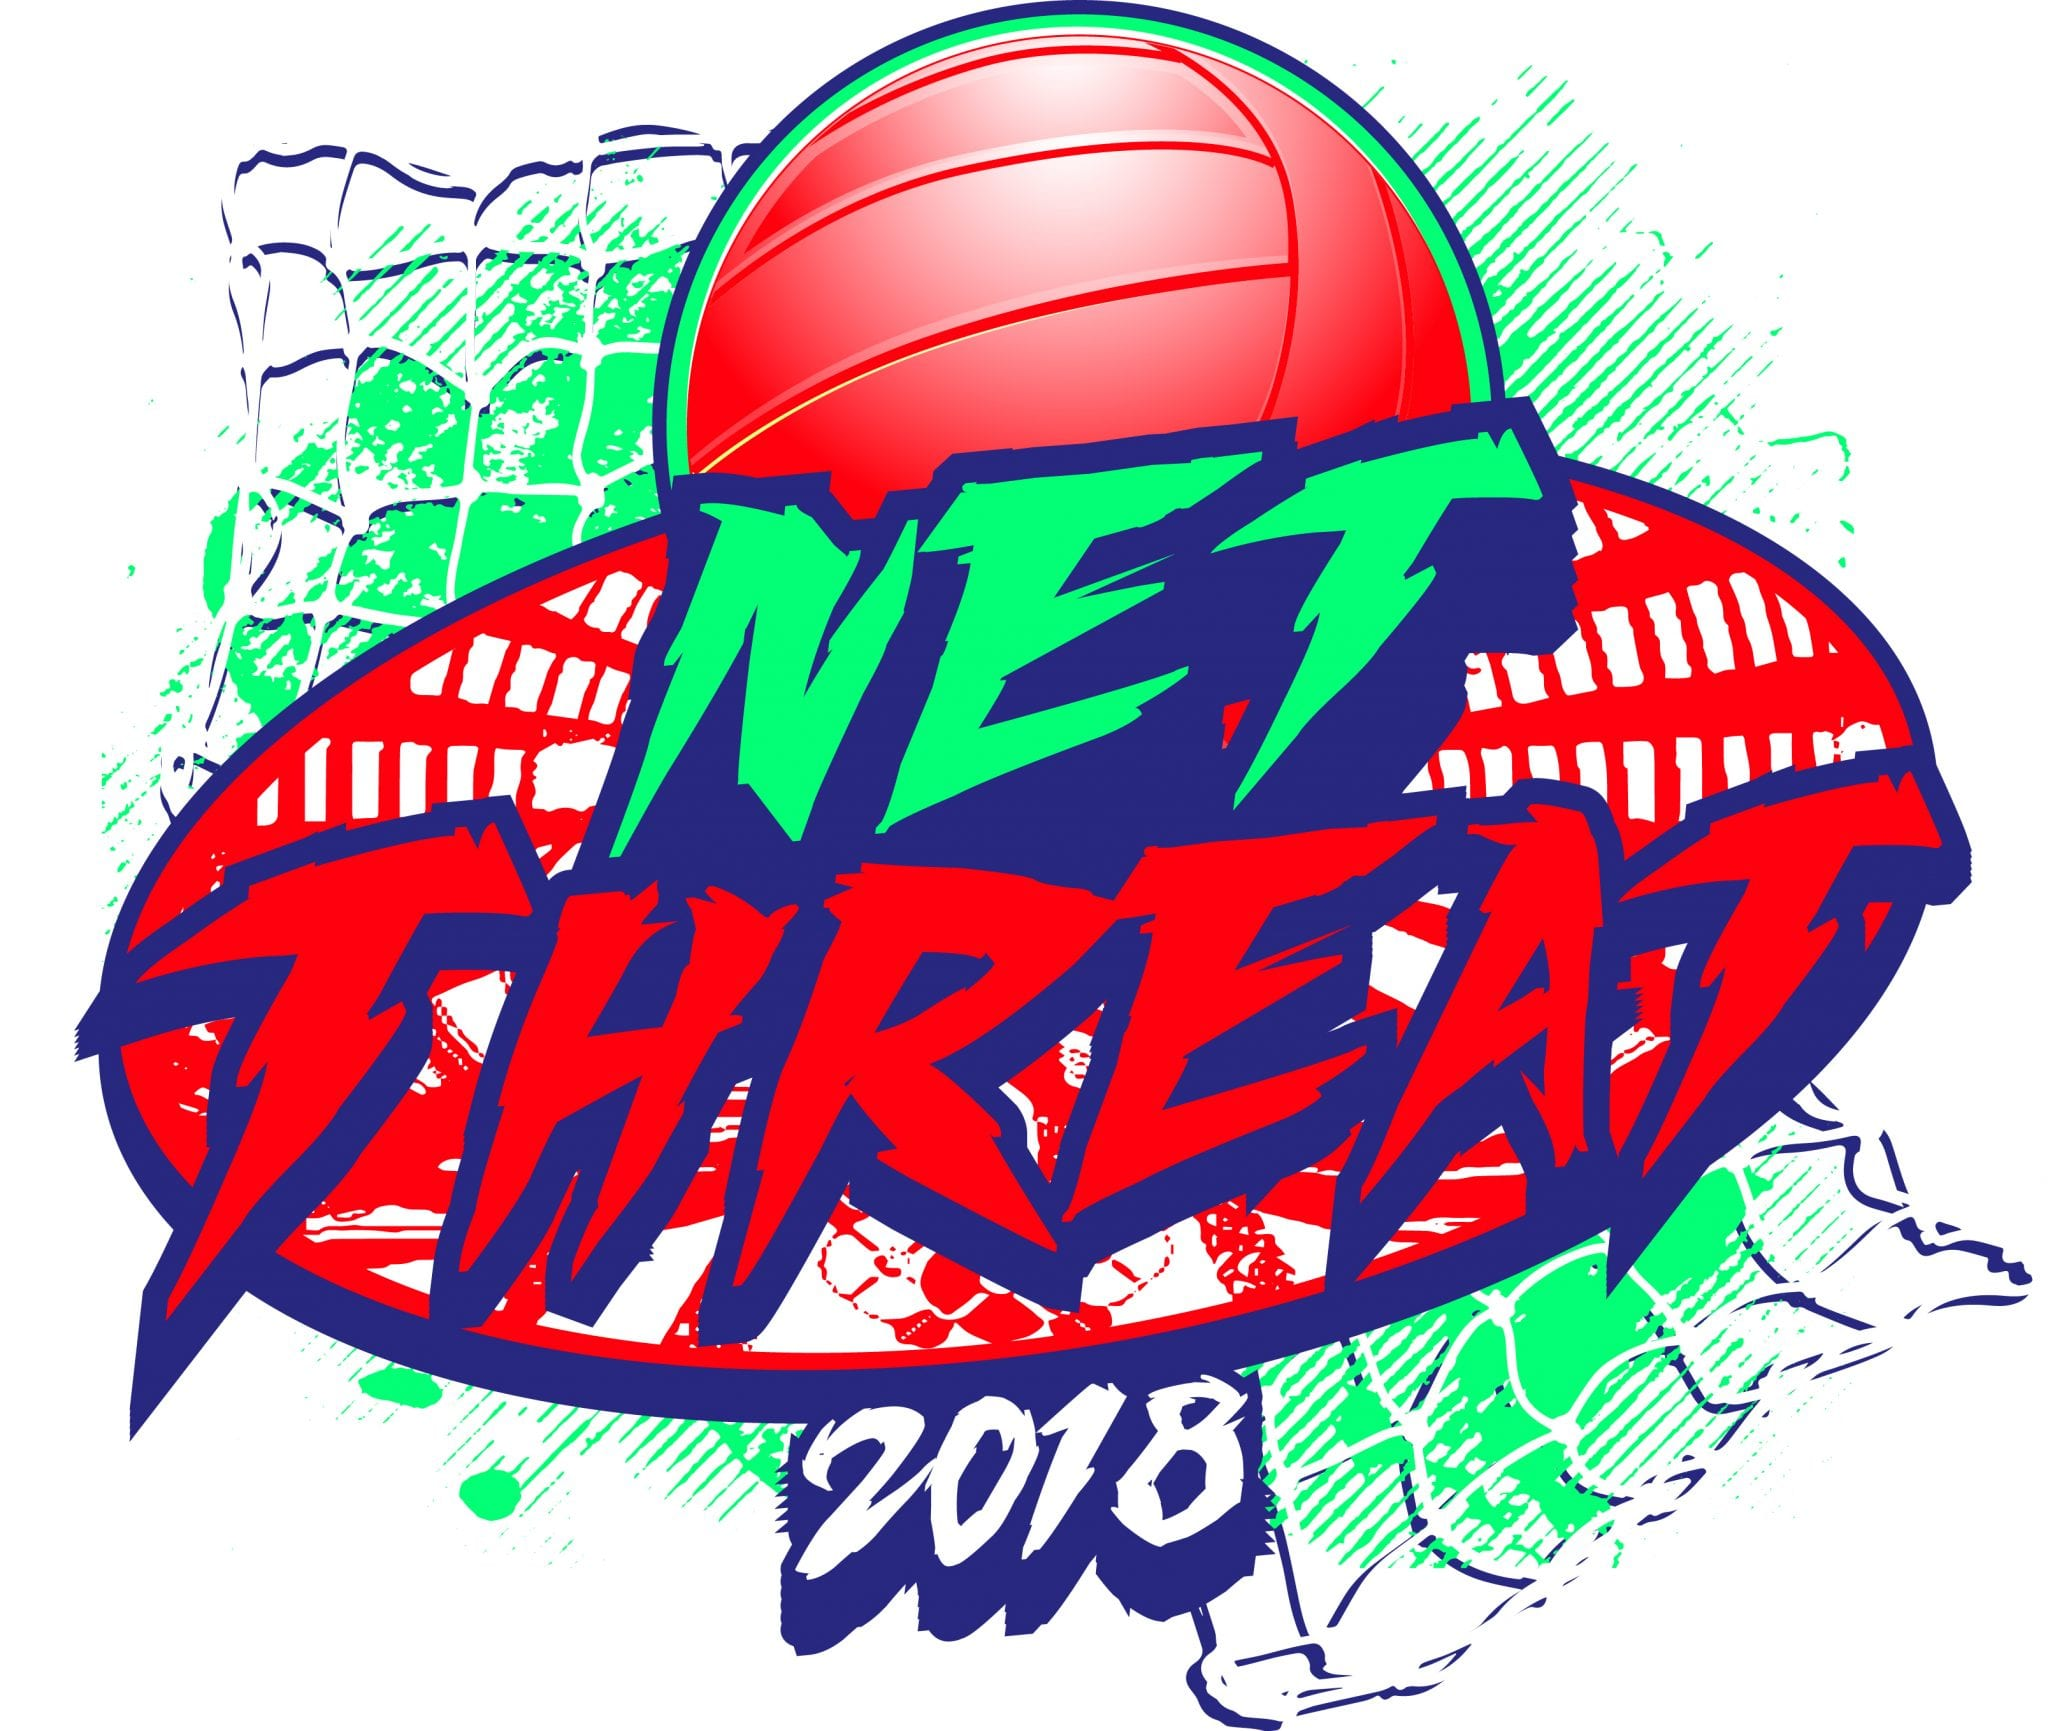 VOLLEYBALL-NET-THREAT-2018-t-shirt-vector-logo-design-for-print-1